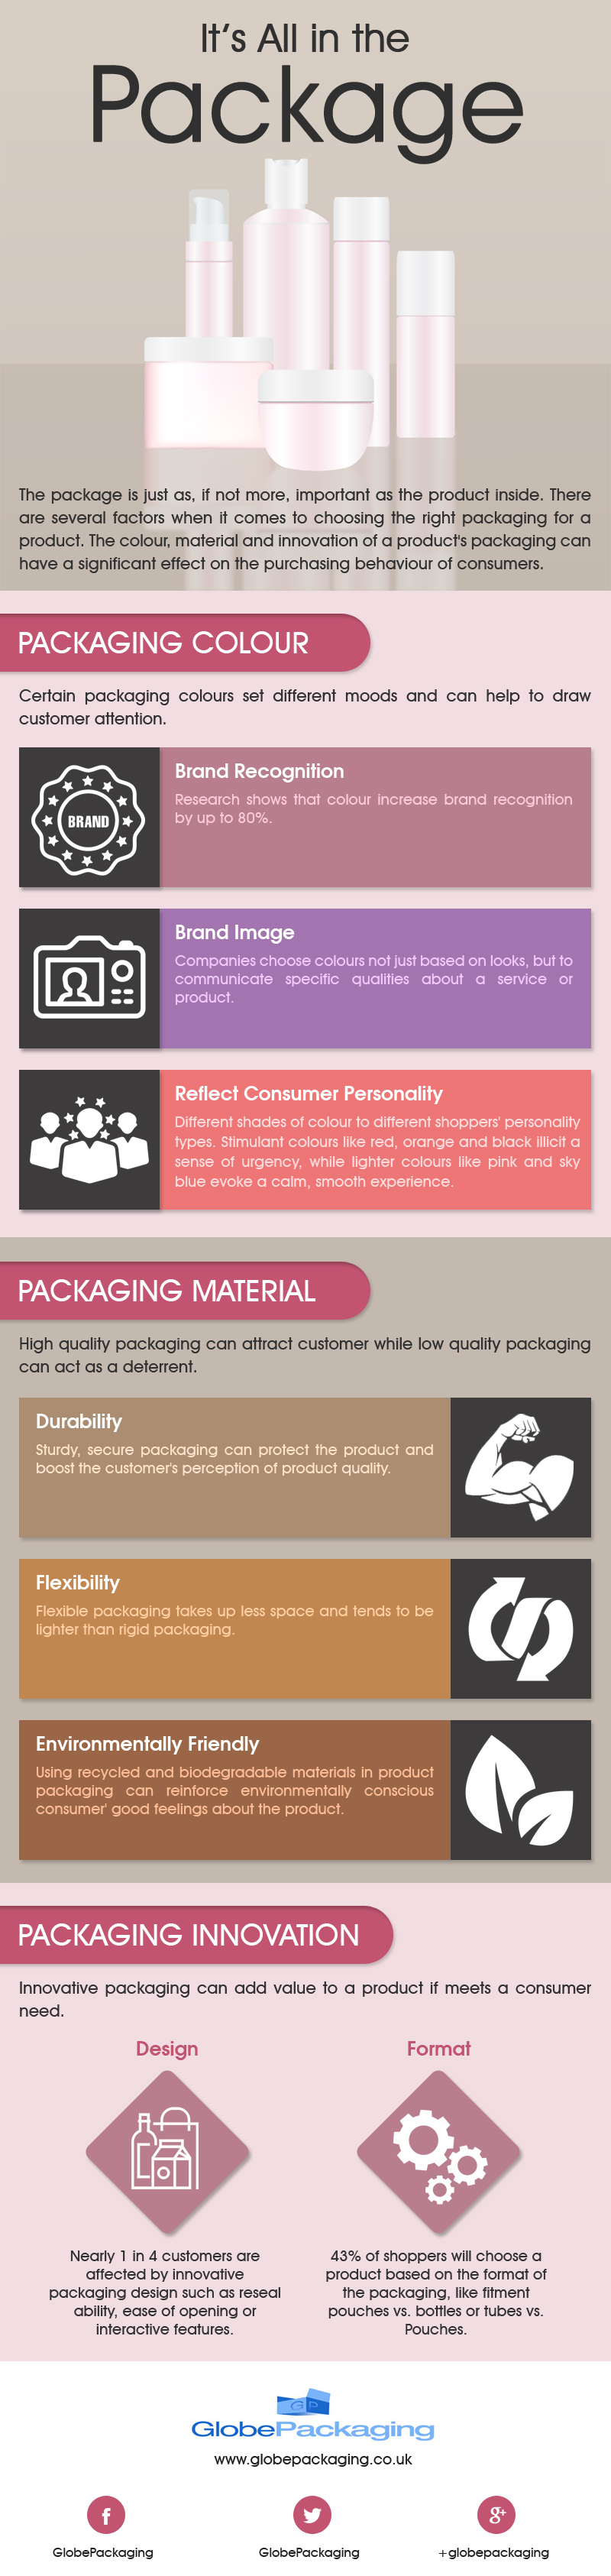 It's All In The Package [Infographic]